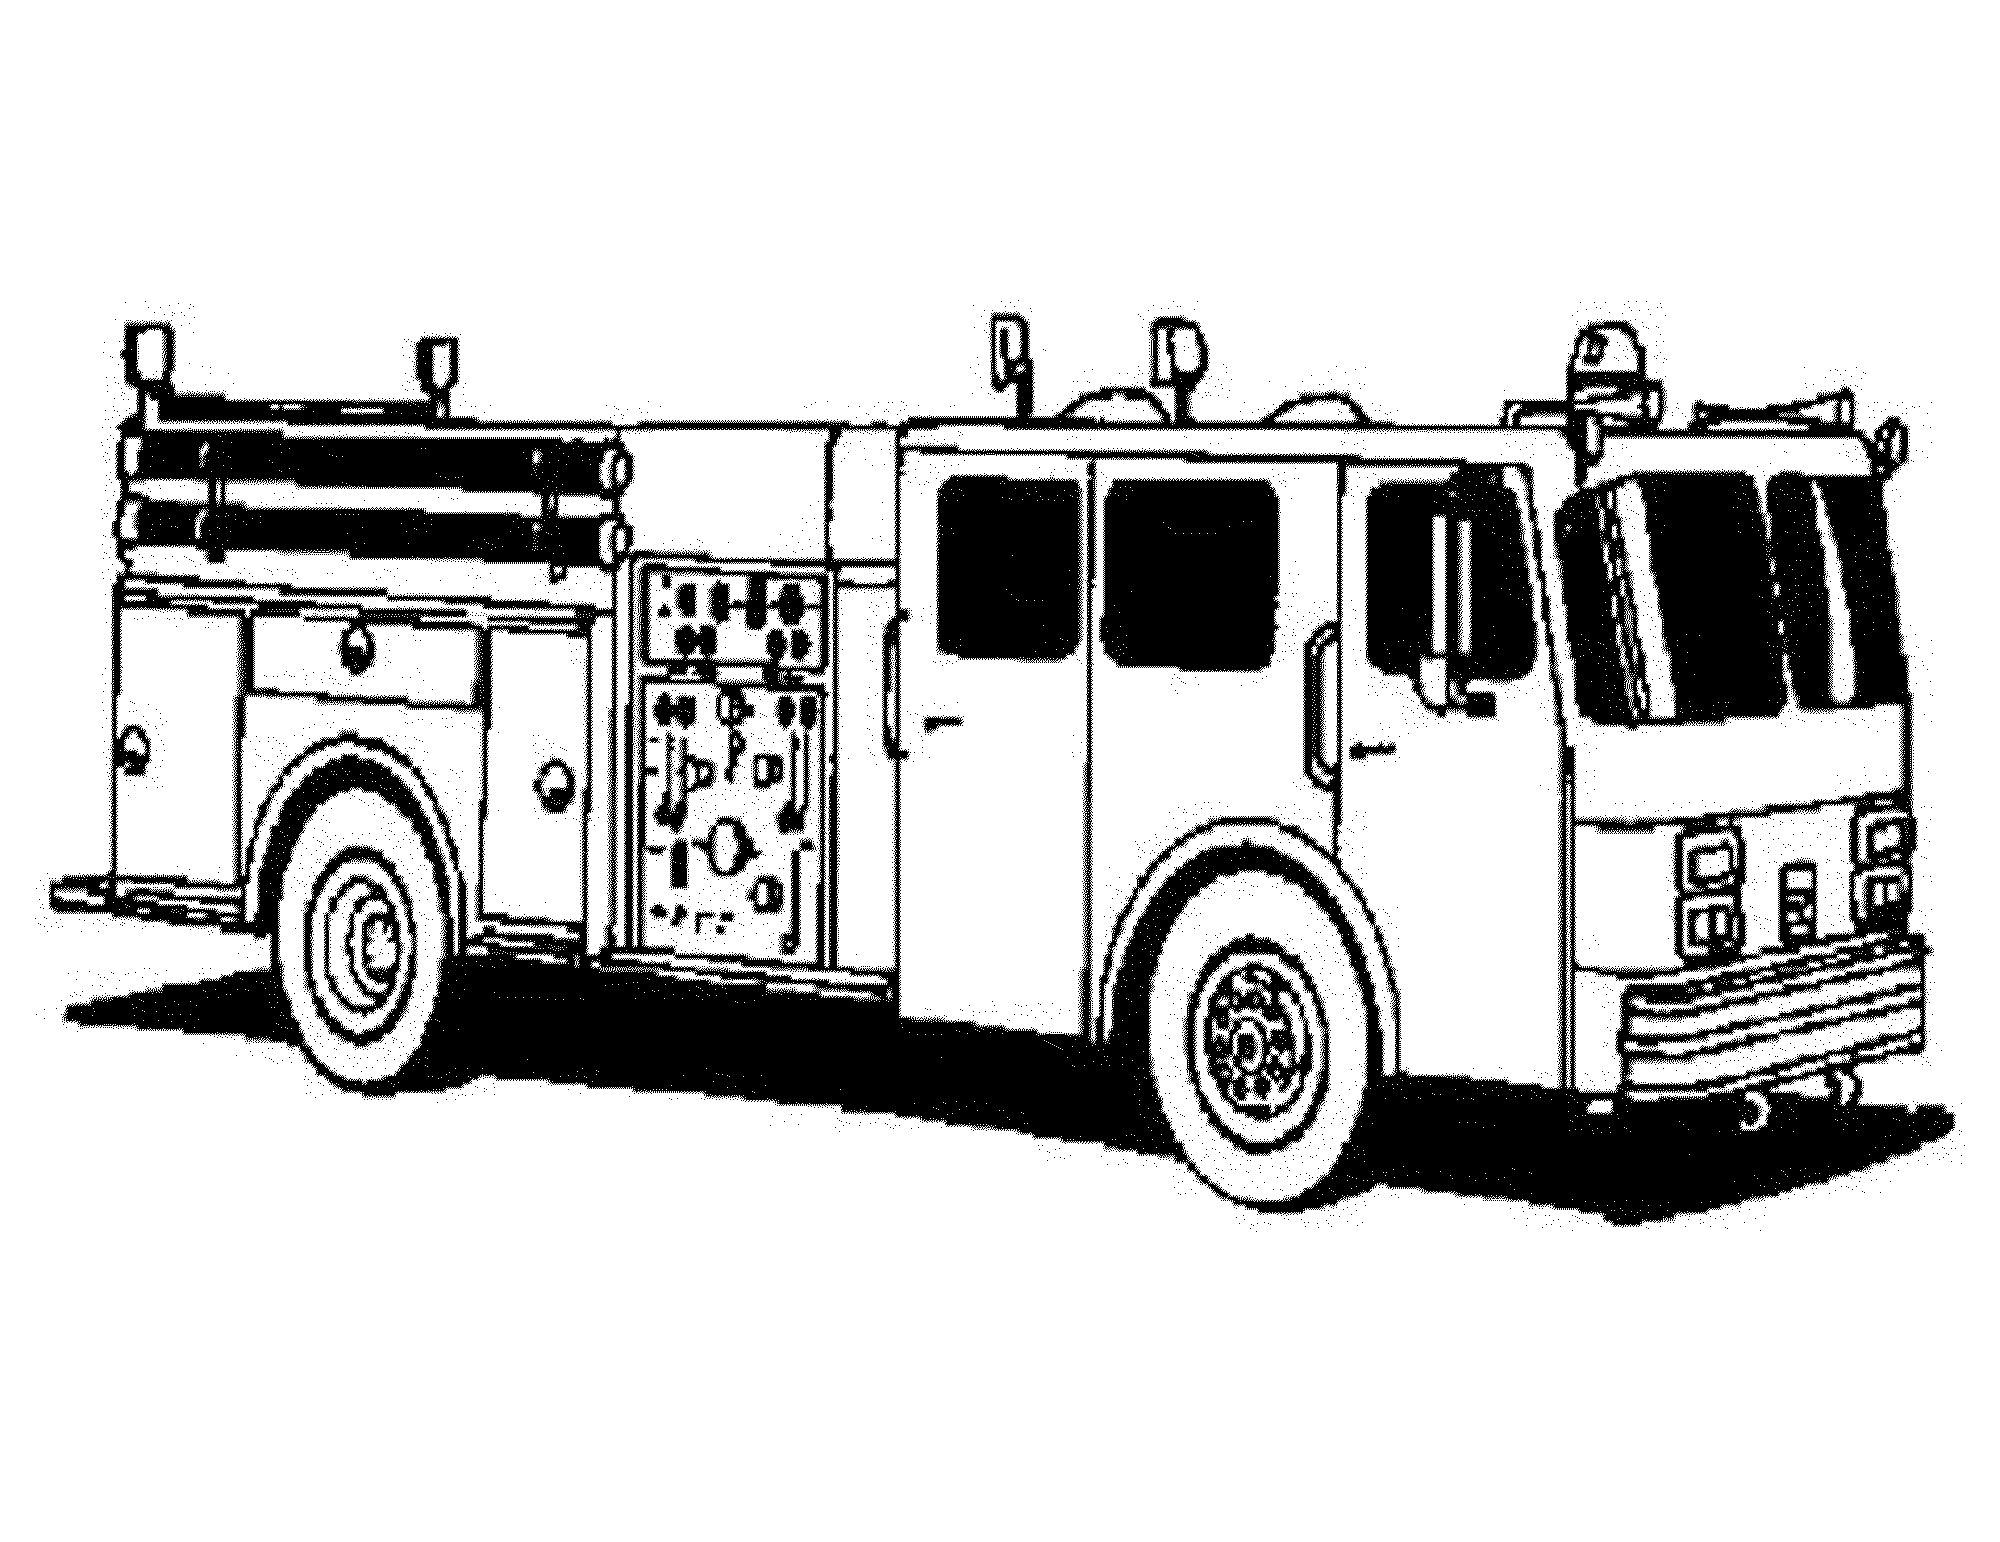 fire truck coloring sheets print download educational fire truck coloring pages coloring truck sheets fire